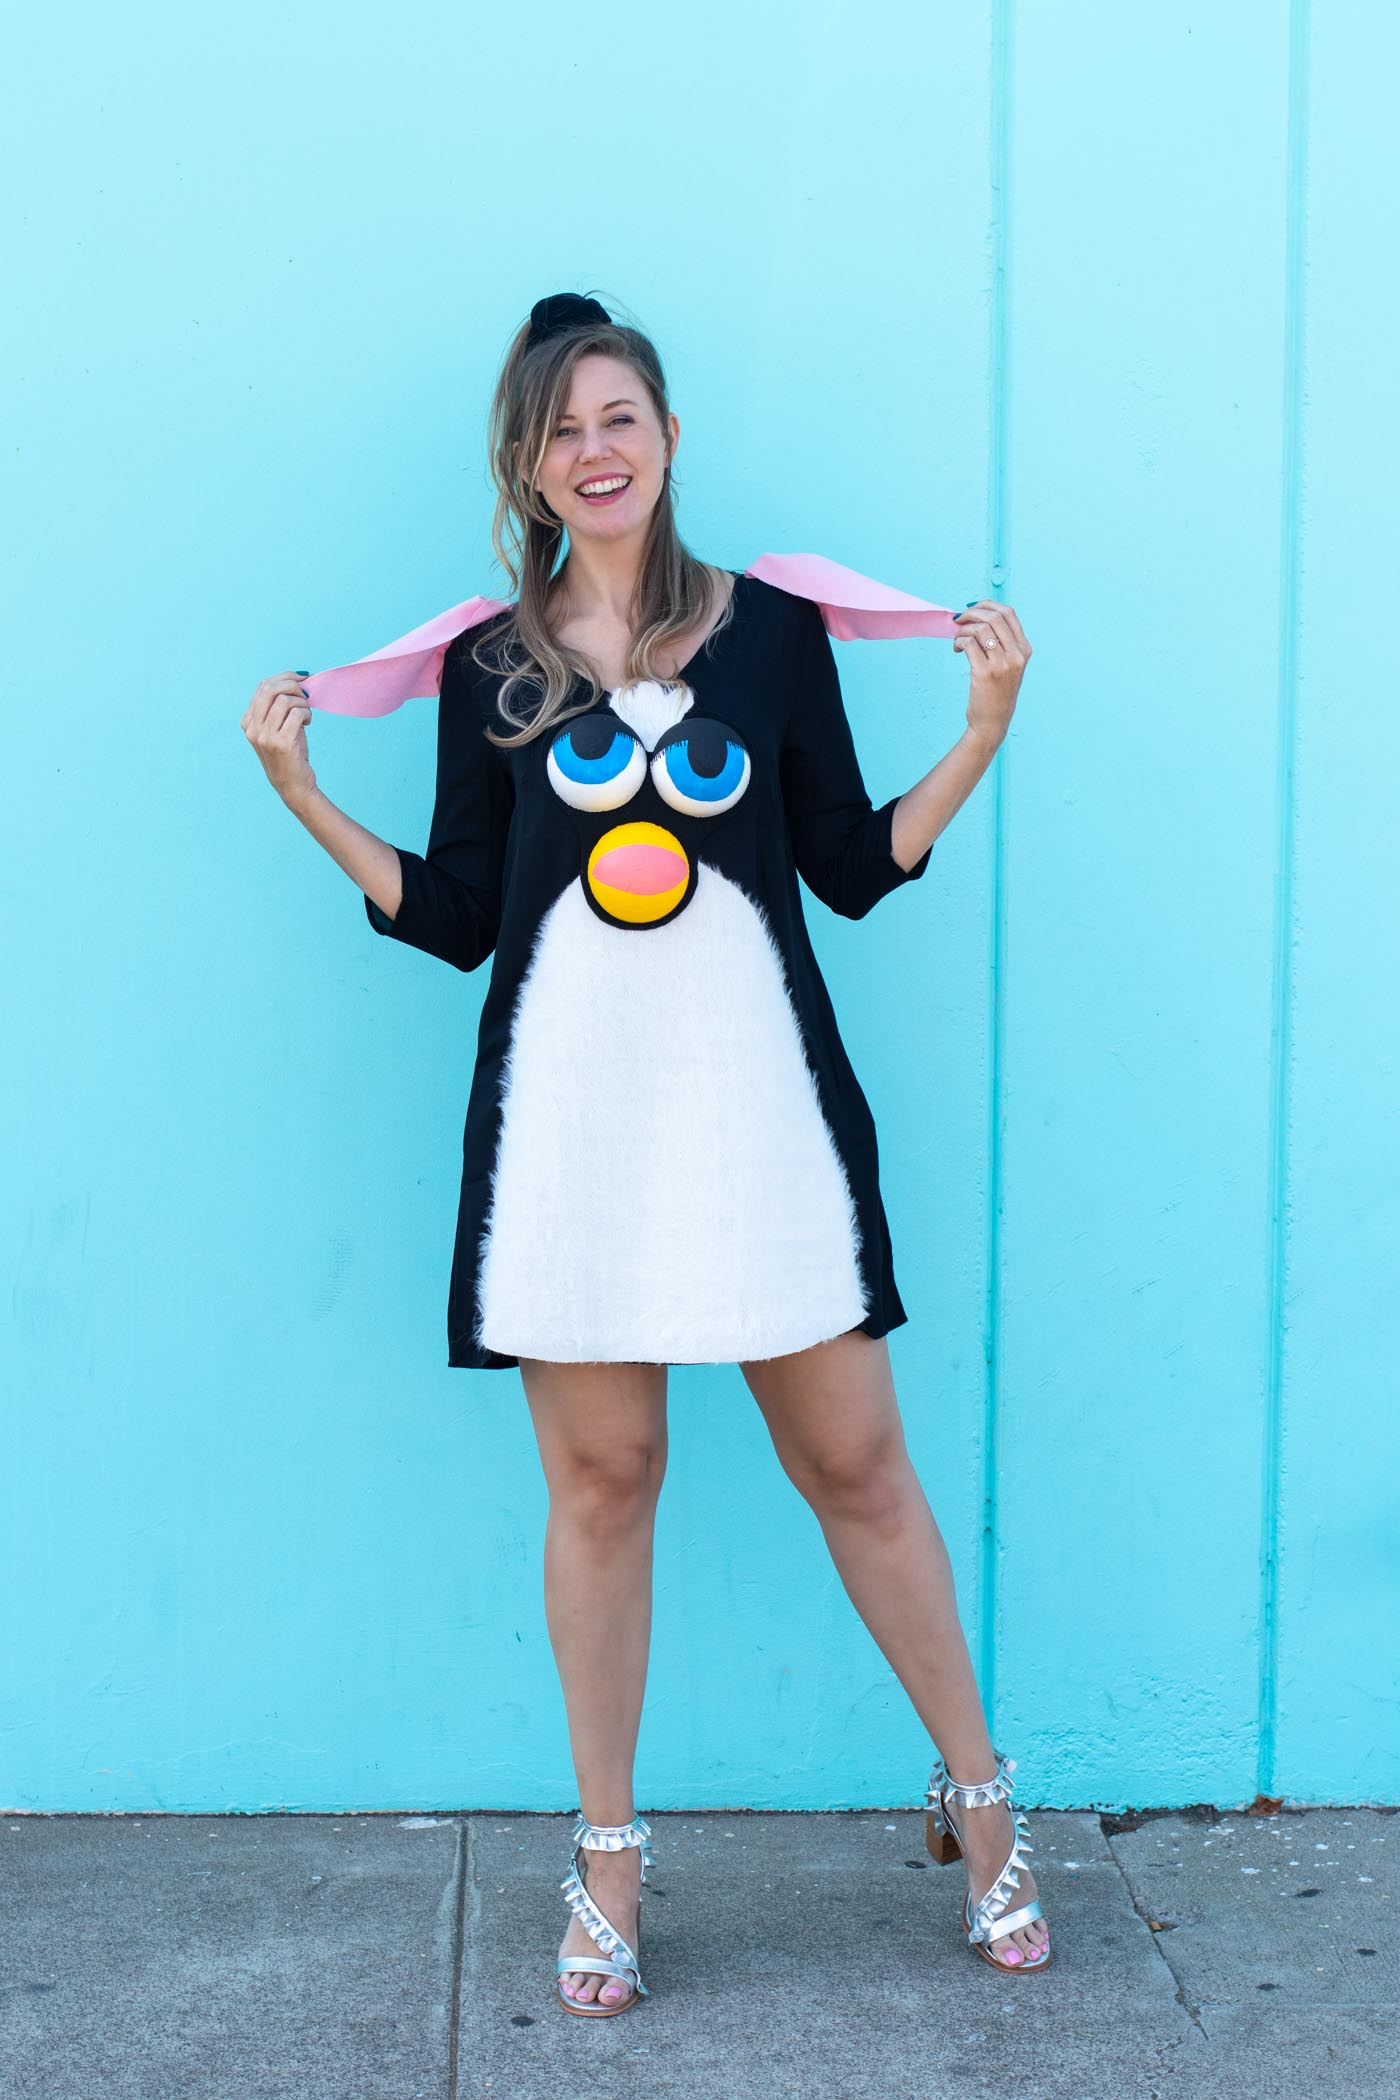 DIY Furby Costume // 90s Toy Costume / Dress up as the classic Furby toy from the 90s with this no-sew Halloween costume! Use faux fur and foam spheres to create a Furby face #halloween #costume #diyhalloween #90s #halloweencostume #furby #dresscostume #nosew